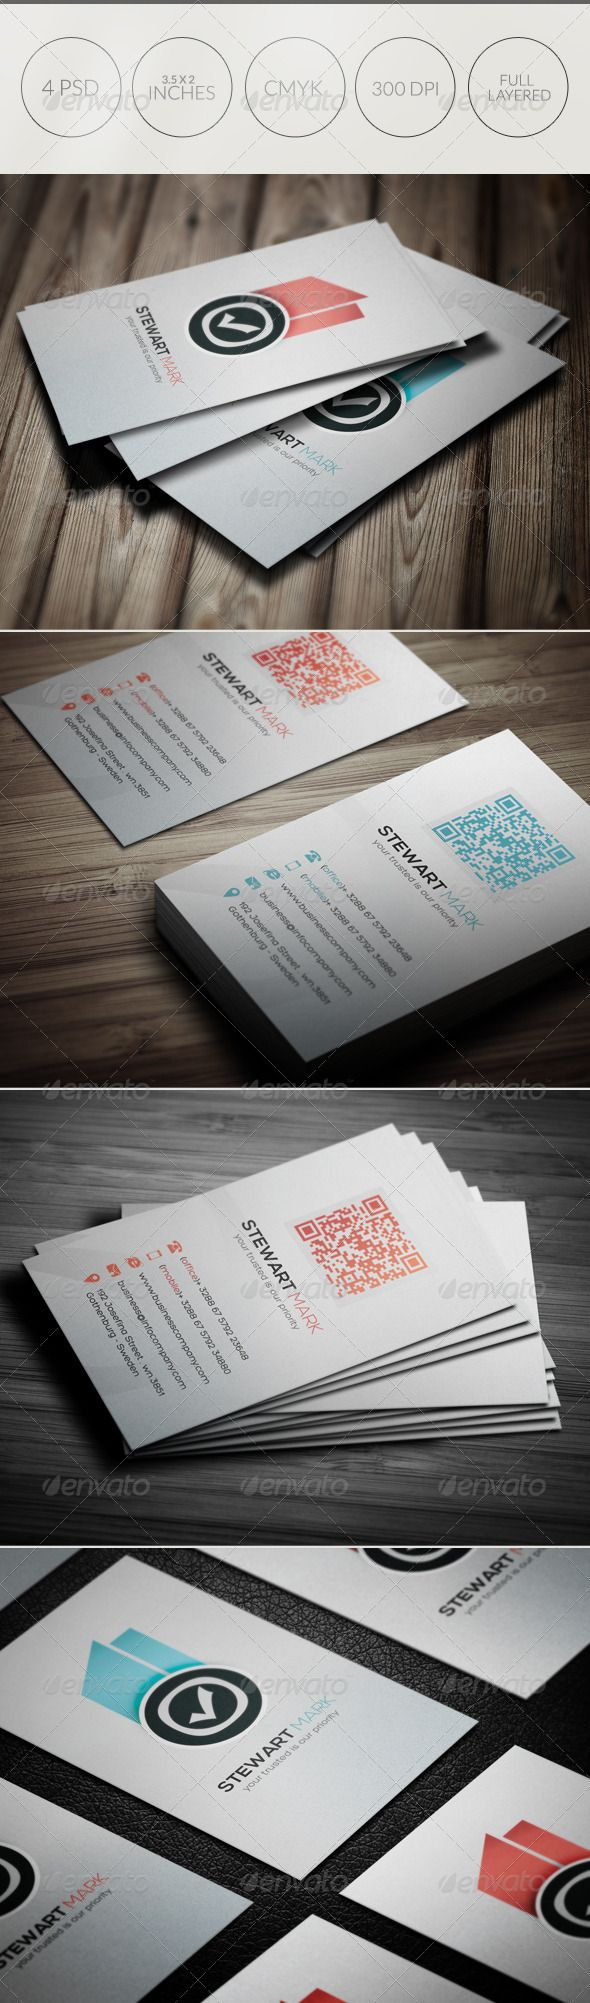 176 best business card images on pinterest business card design creative business card 045 reheart Choice Image